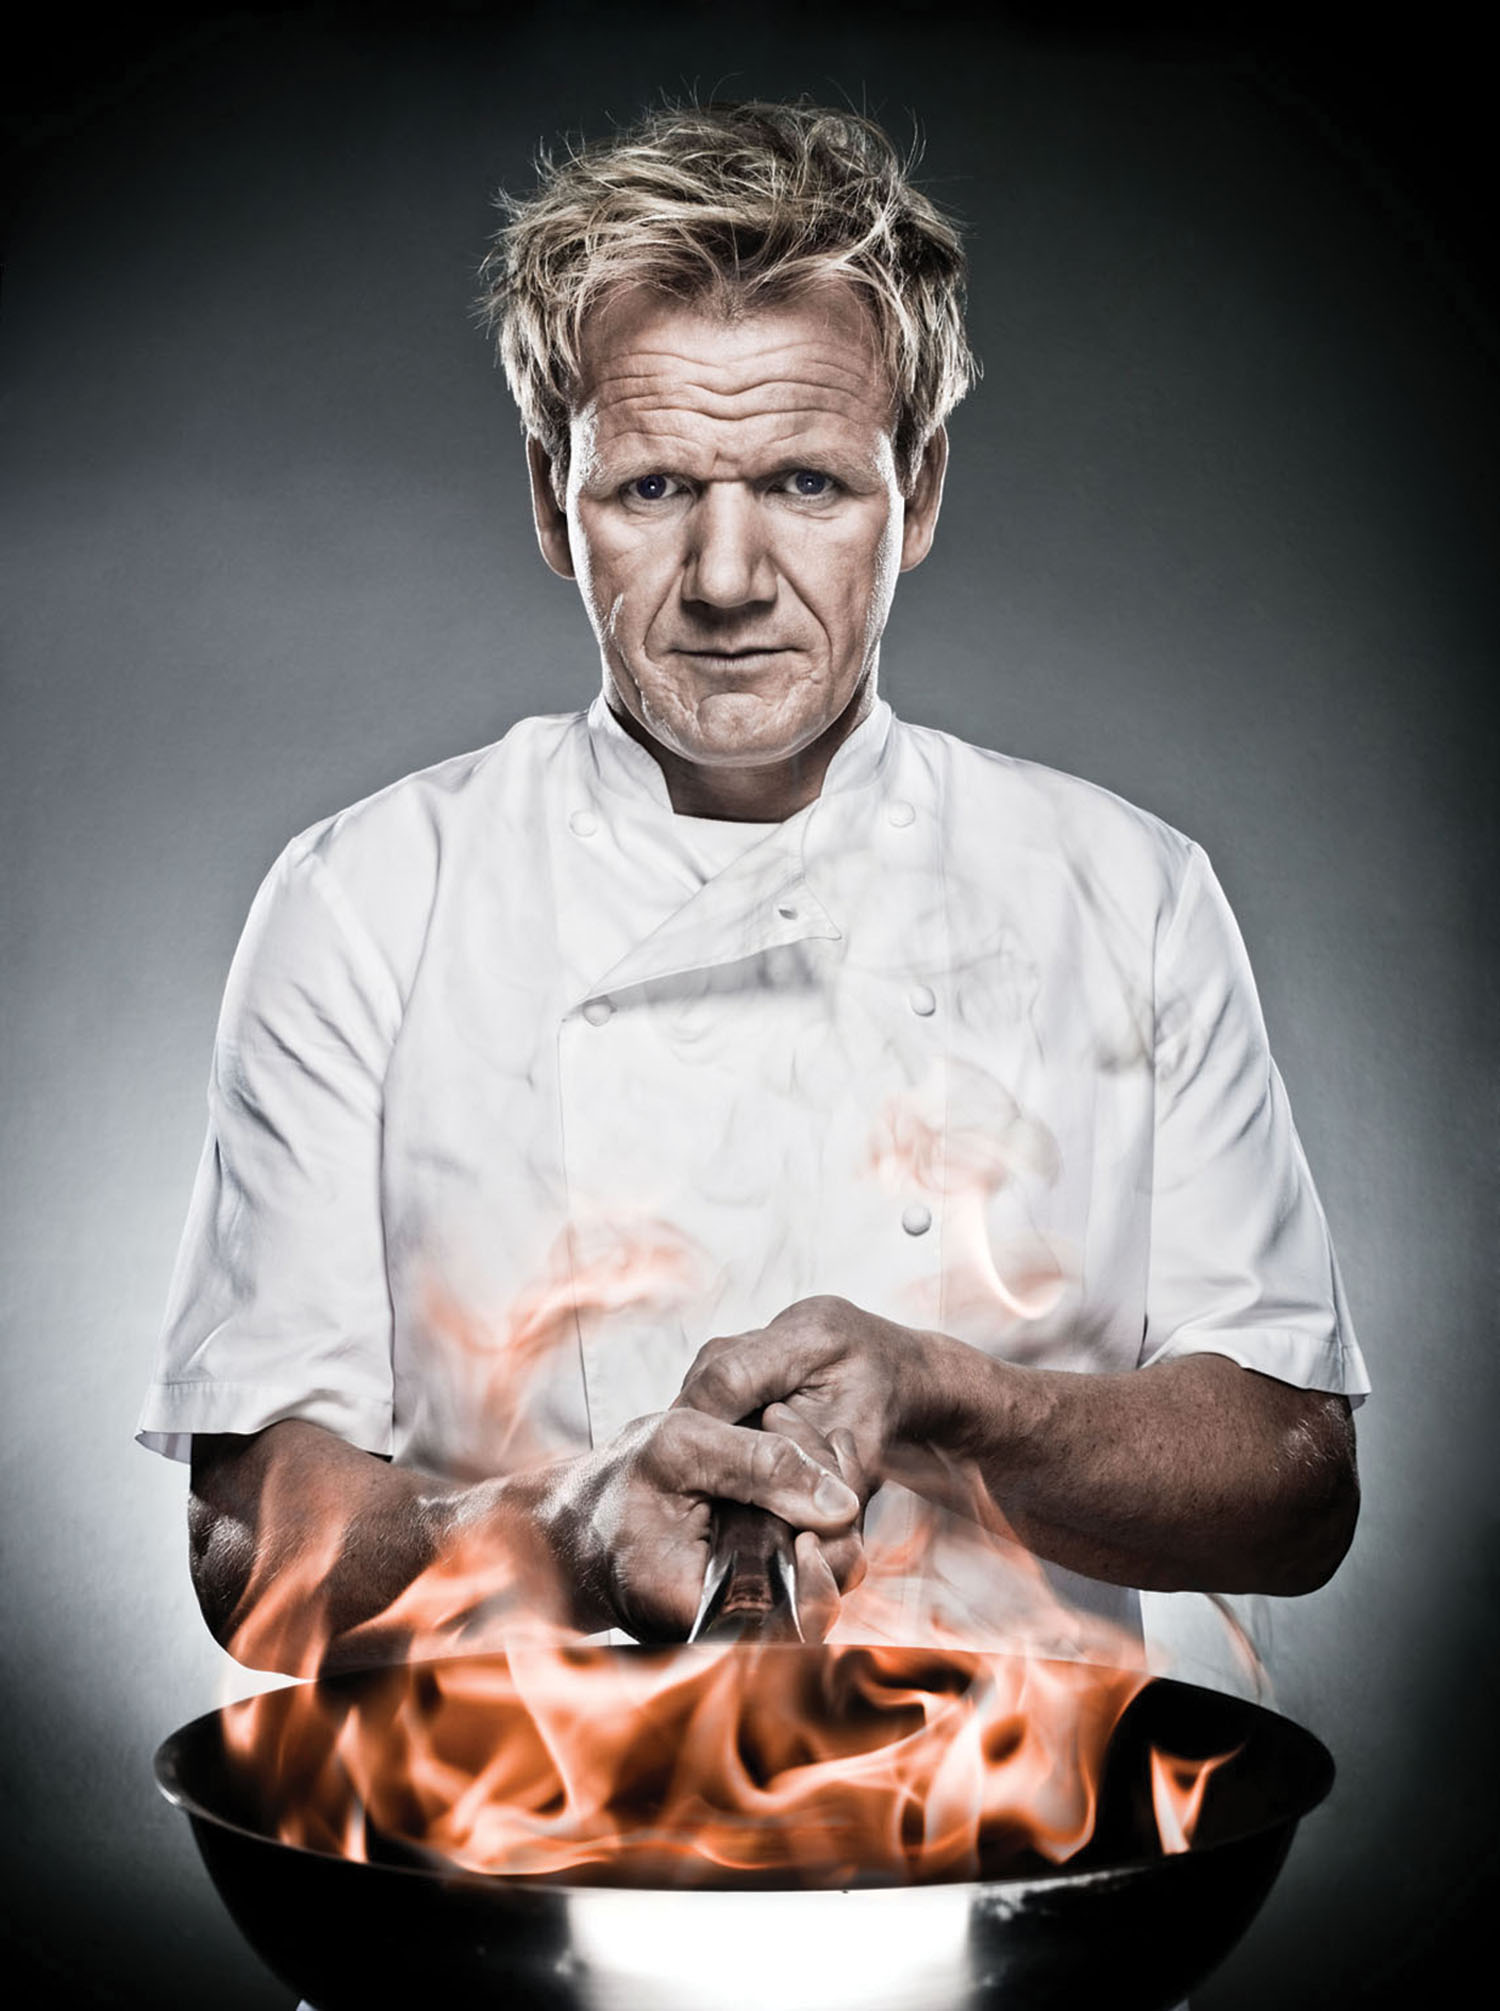 Gordon Ramsay Urban Splatter